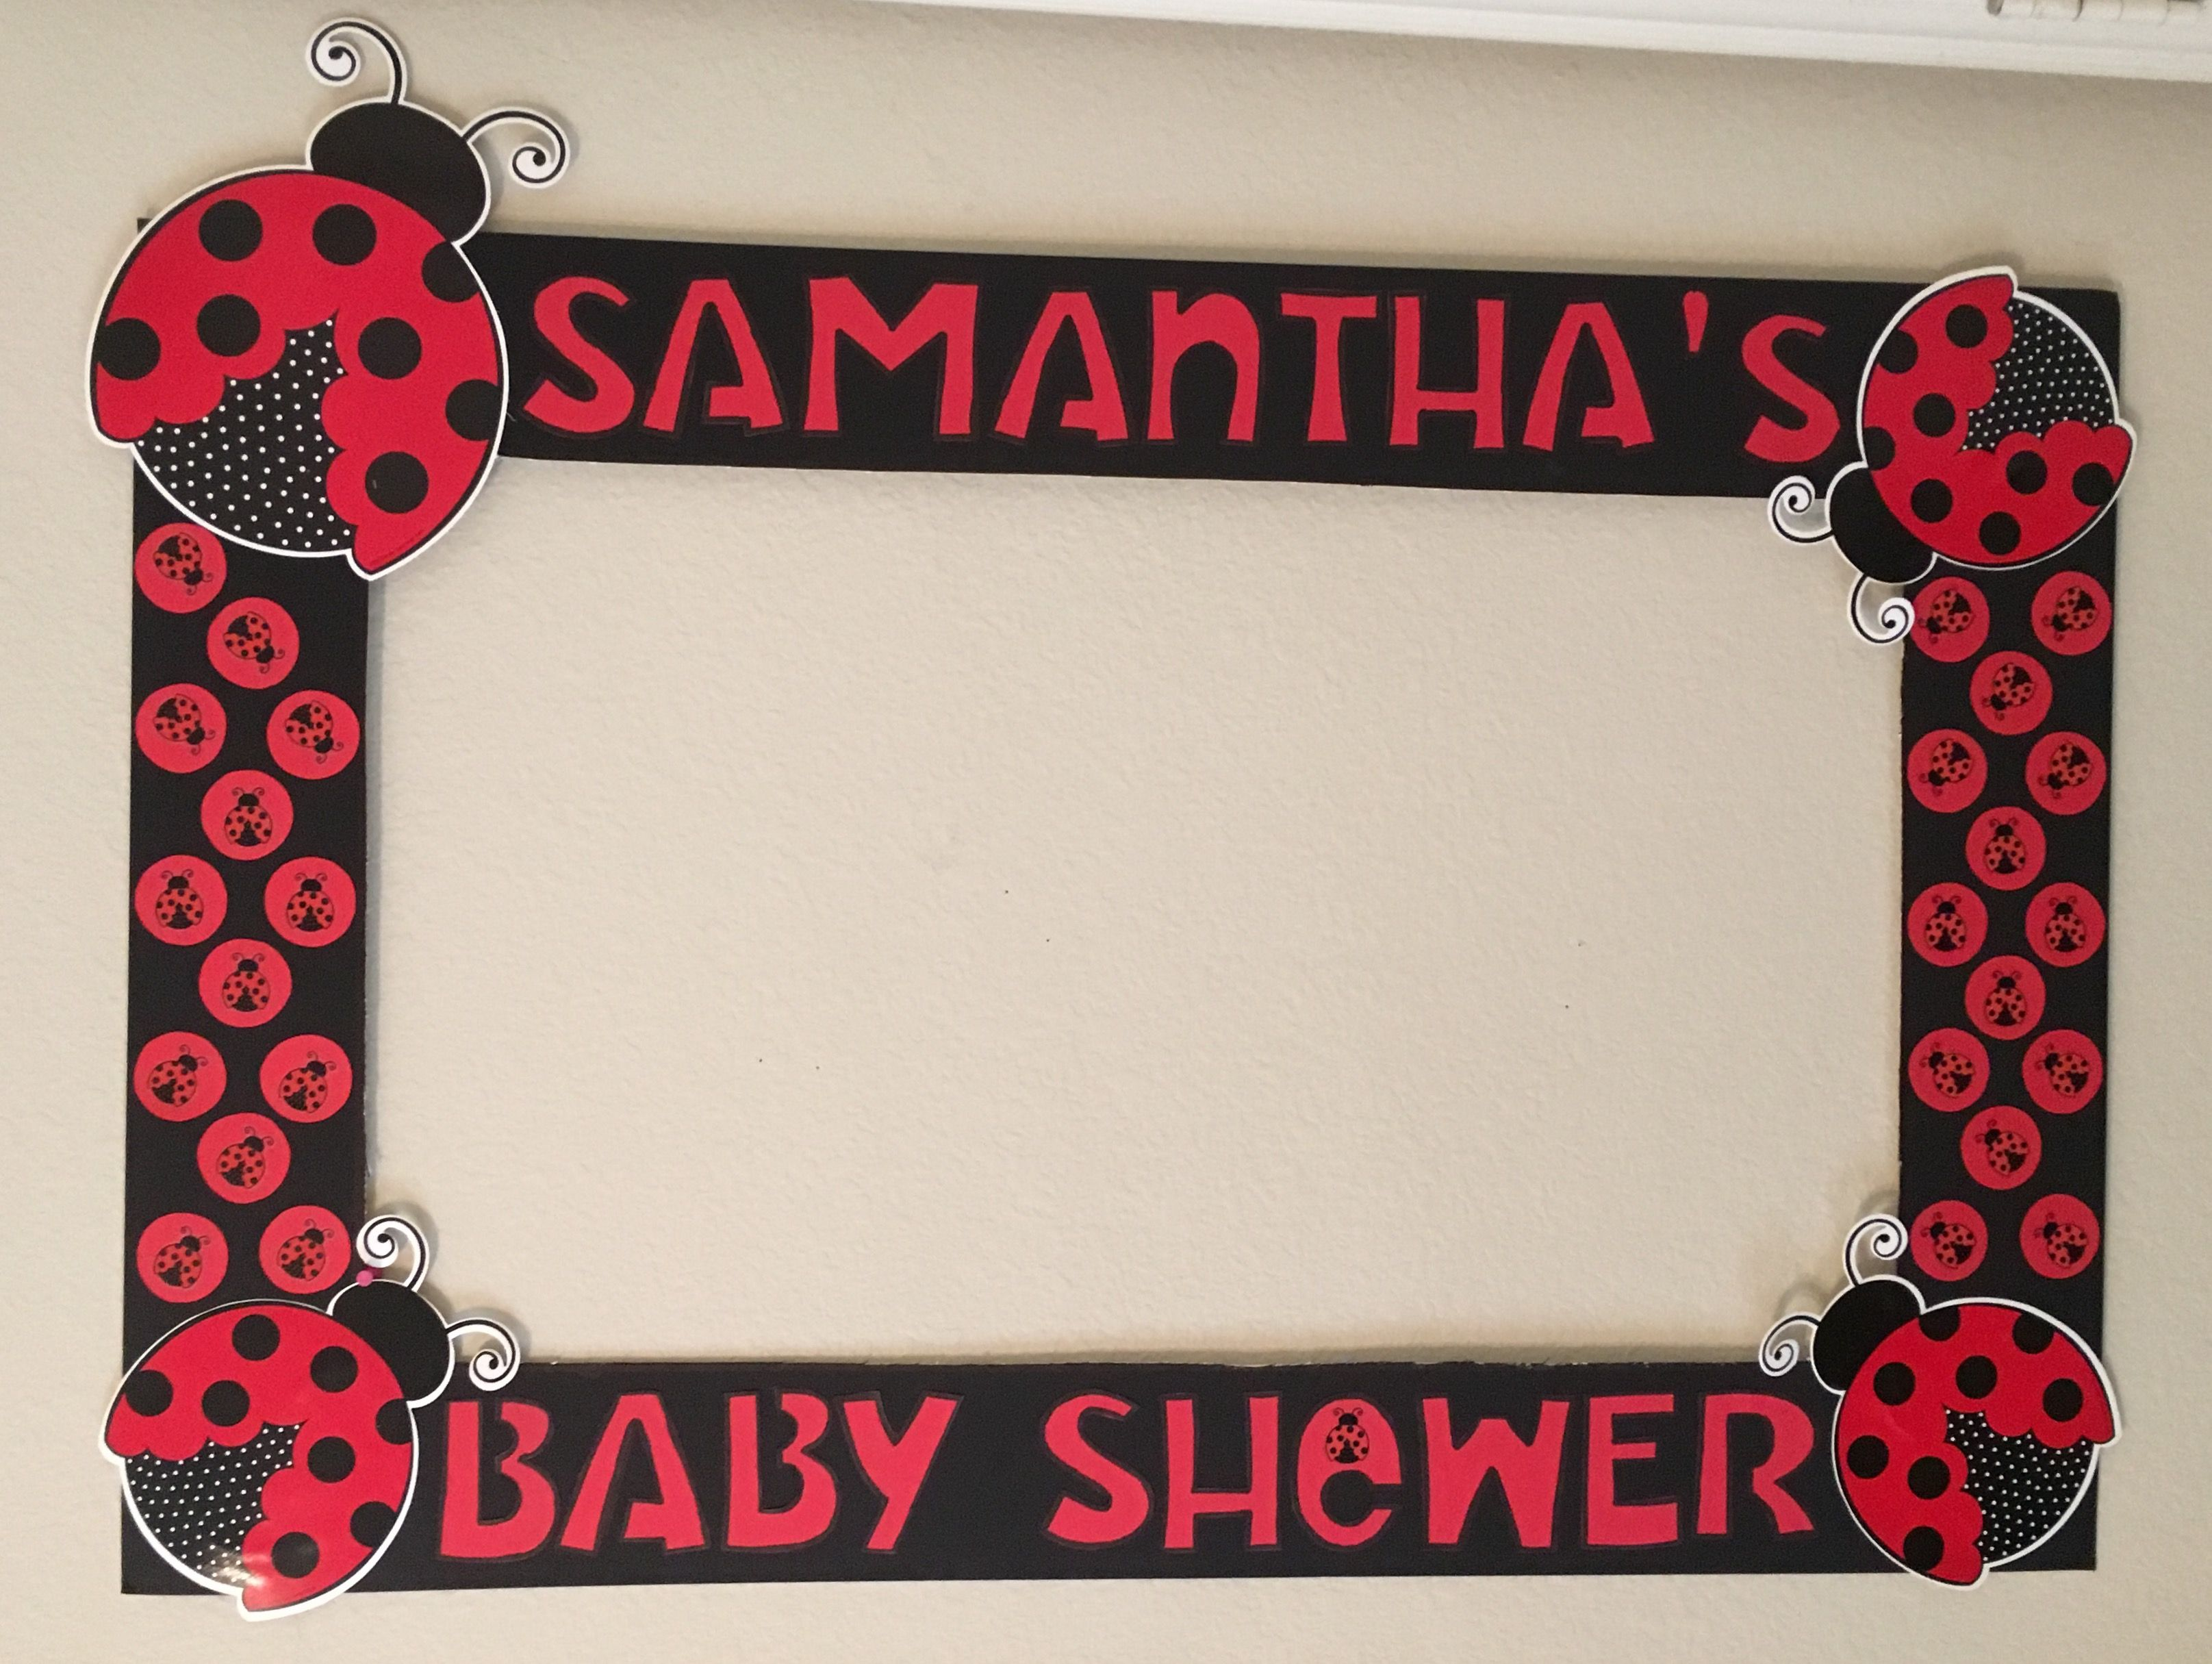 LadyBug Frame Baby Shower | Lady Bug | Pinterest | Bday party ideas